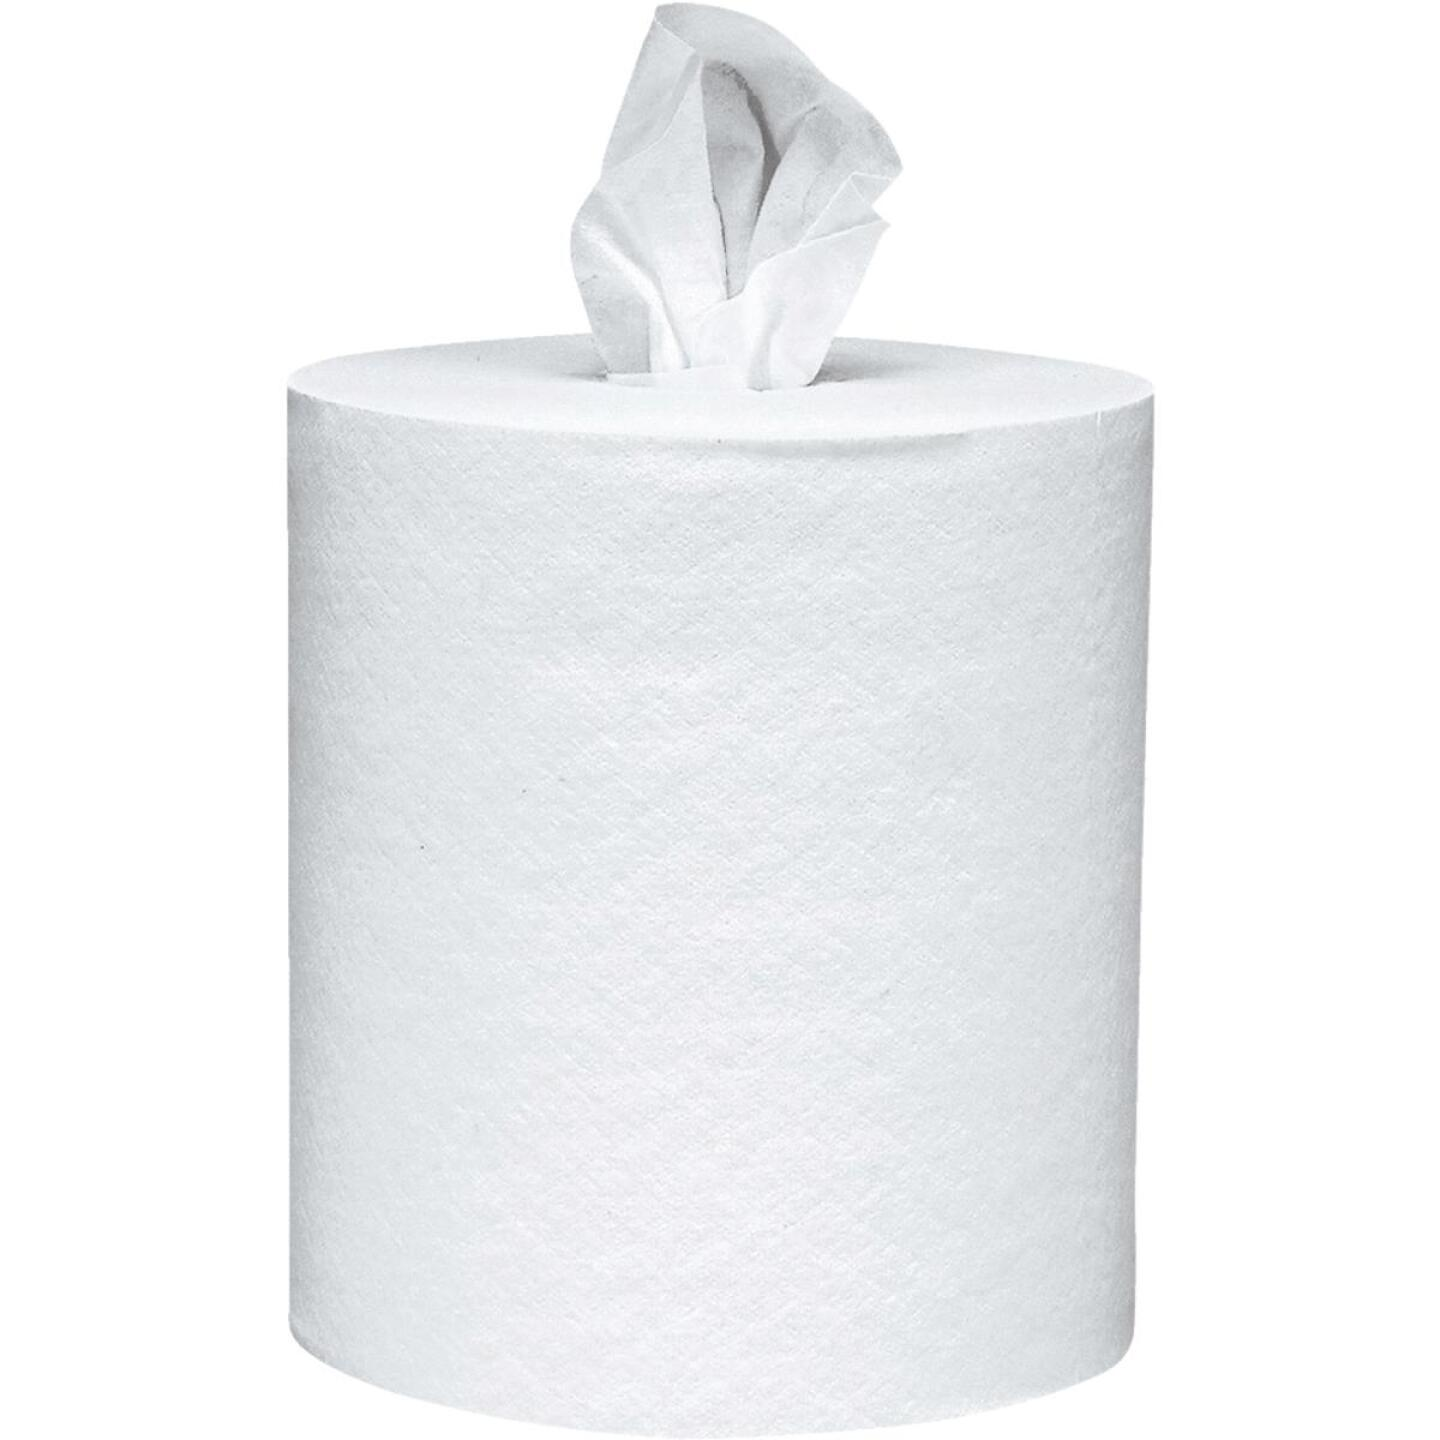 Kimberly Clark Kleenex Premiere Center-Pull Roll Towel (4 Count) Image 1